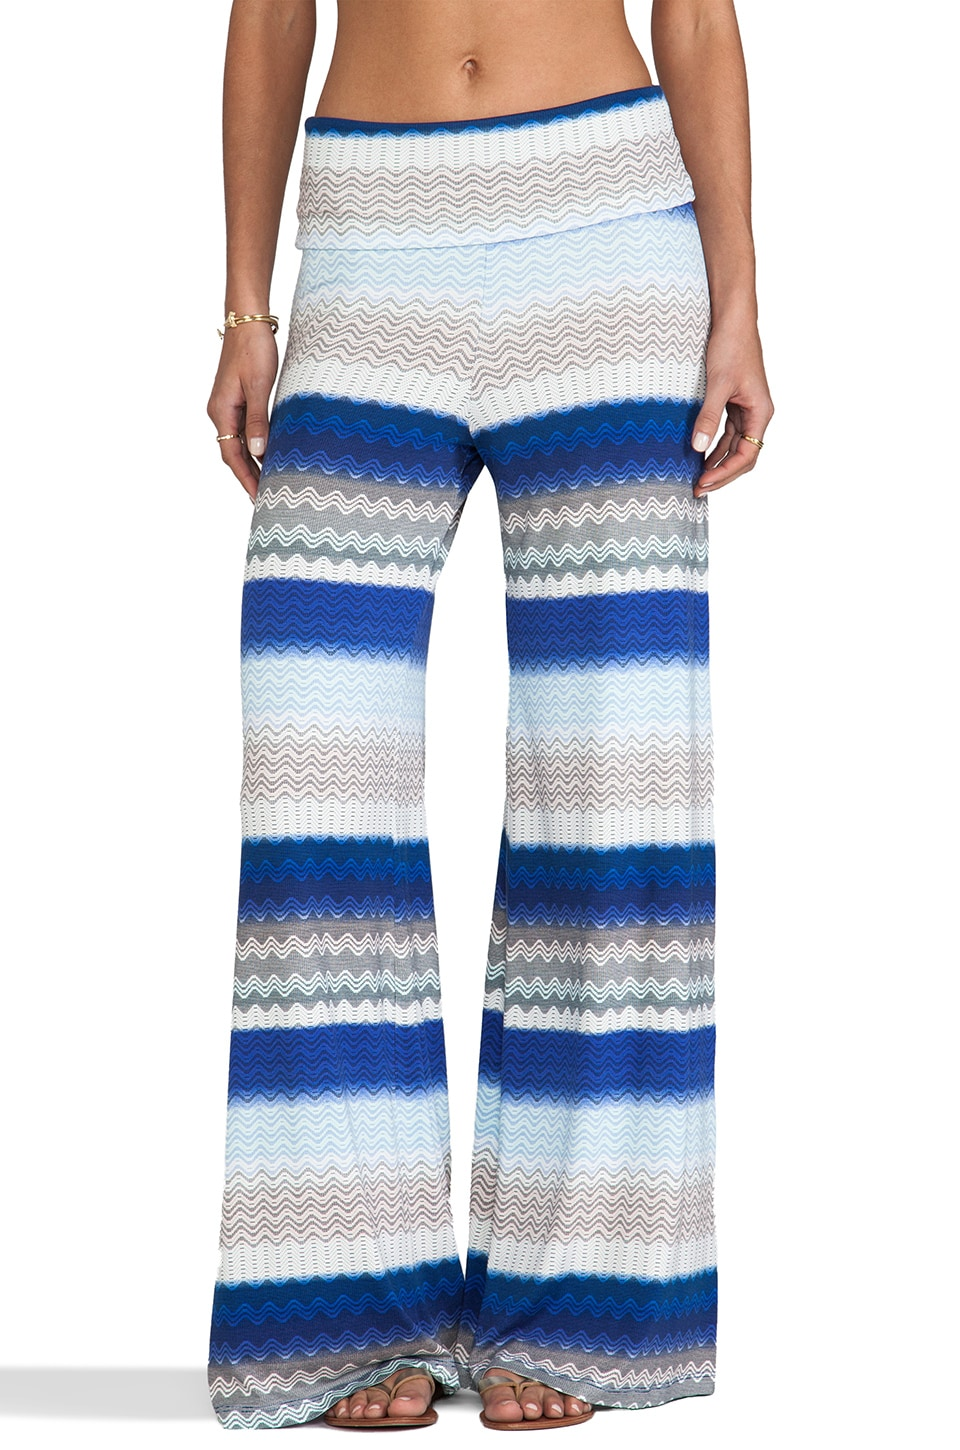 Karina Grimaldi Basic Knit Pant in Sea Shore